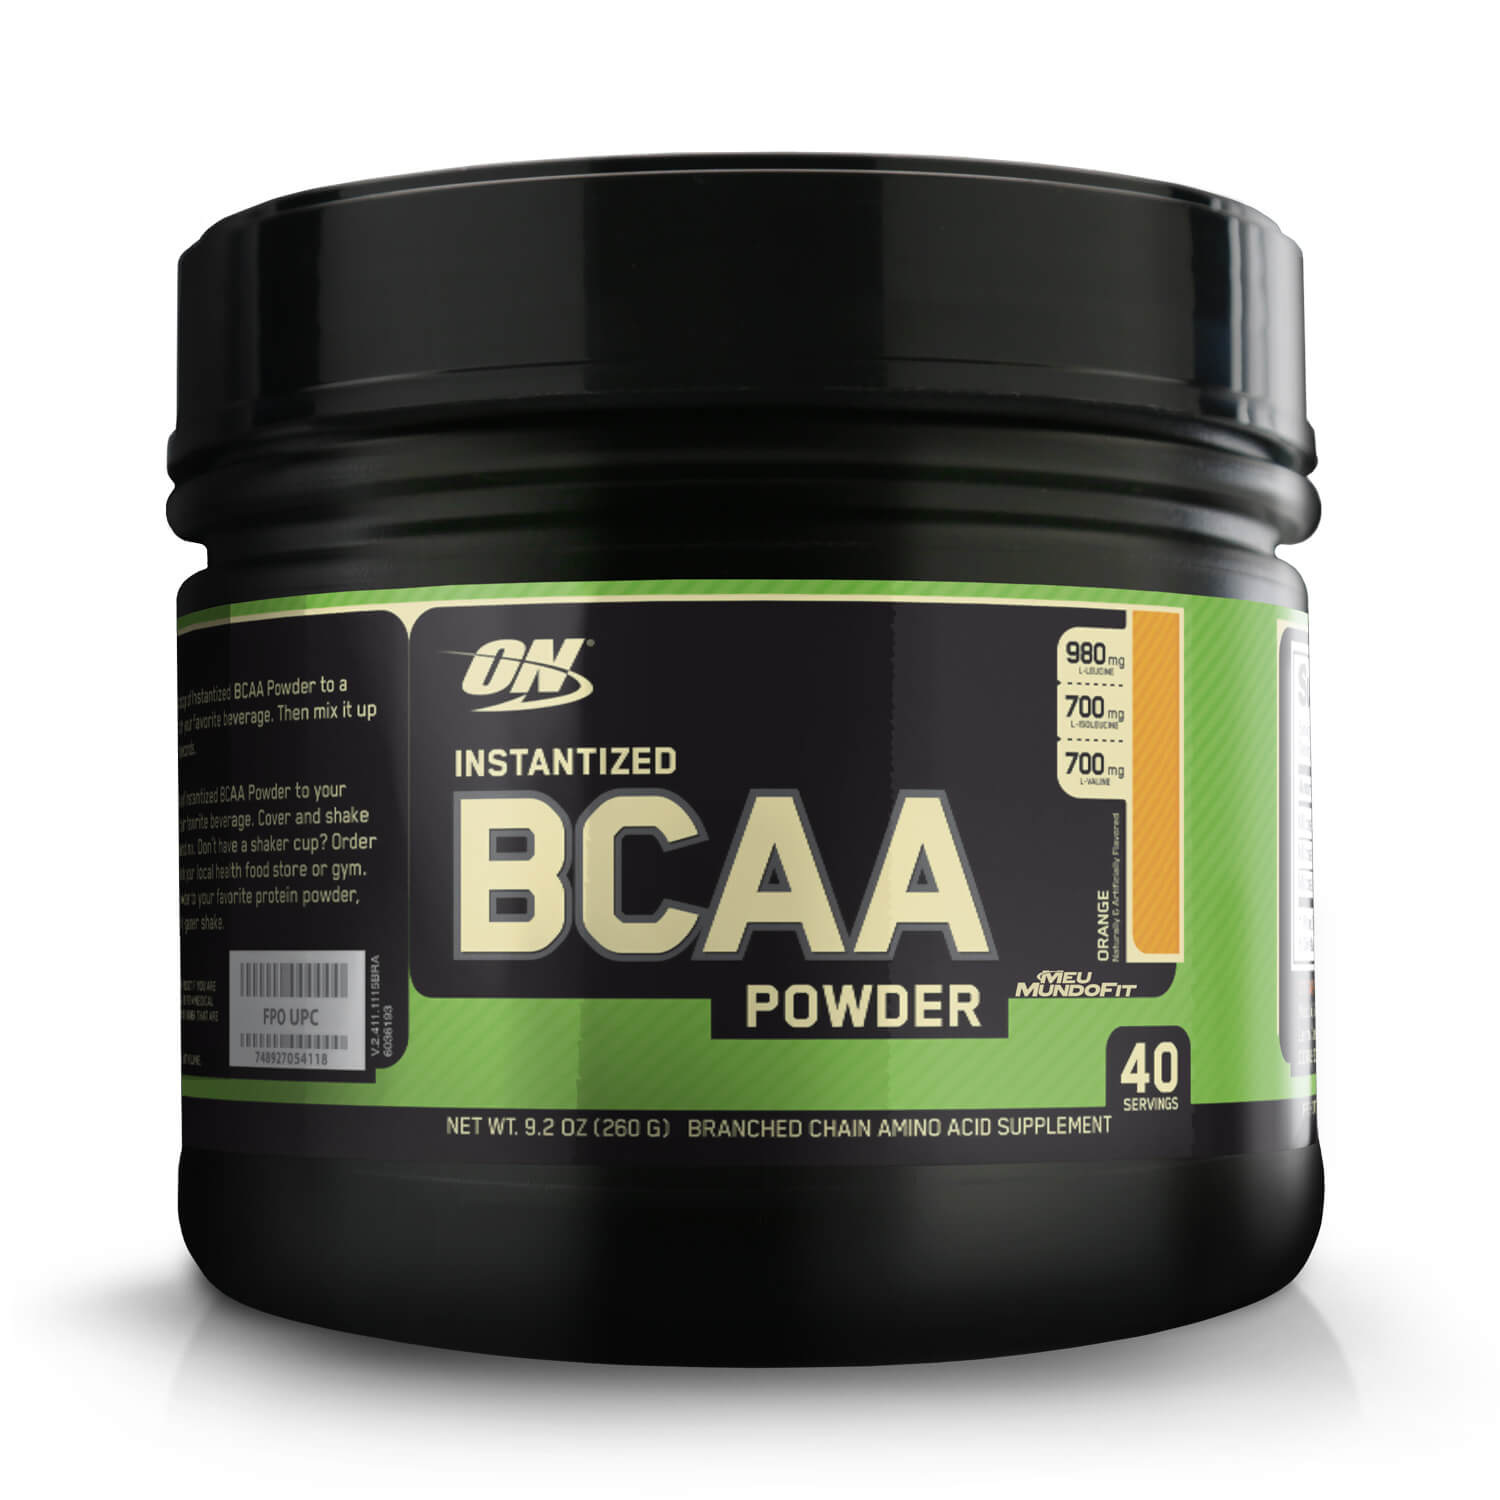 BCAA Powder Instantized Optimum Nutrition 260g